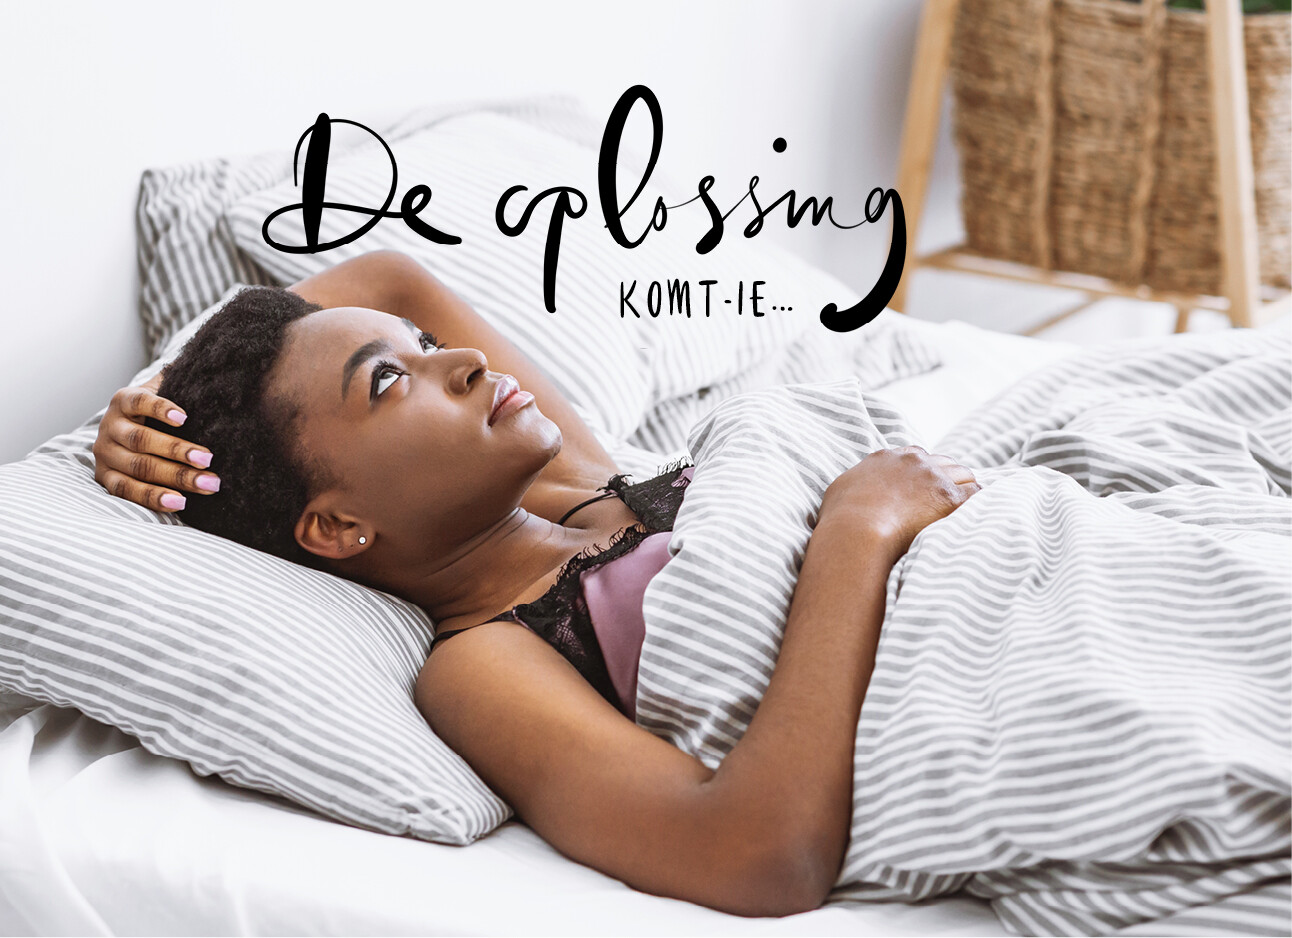 vrouw starend in bed